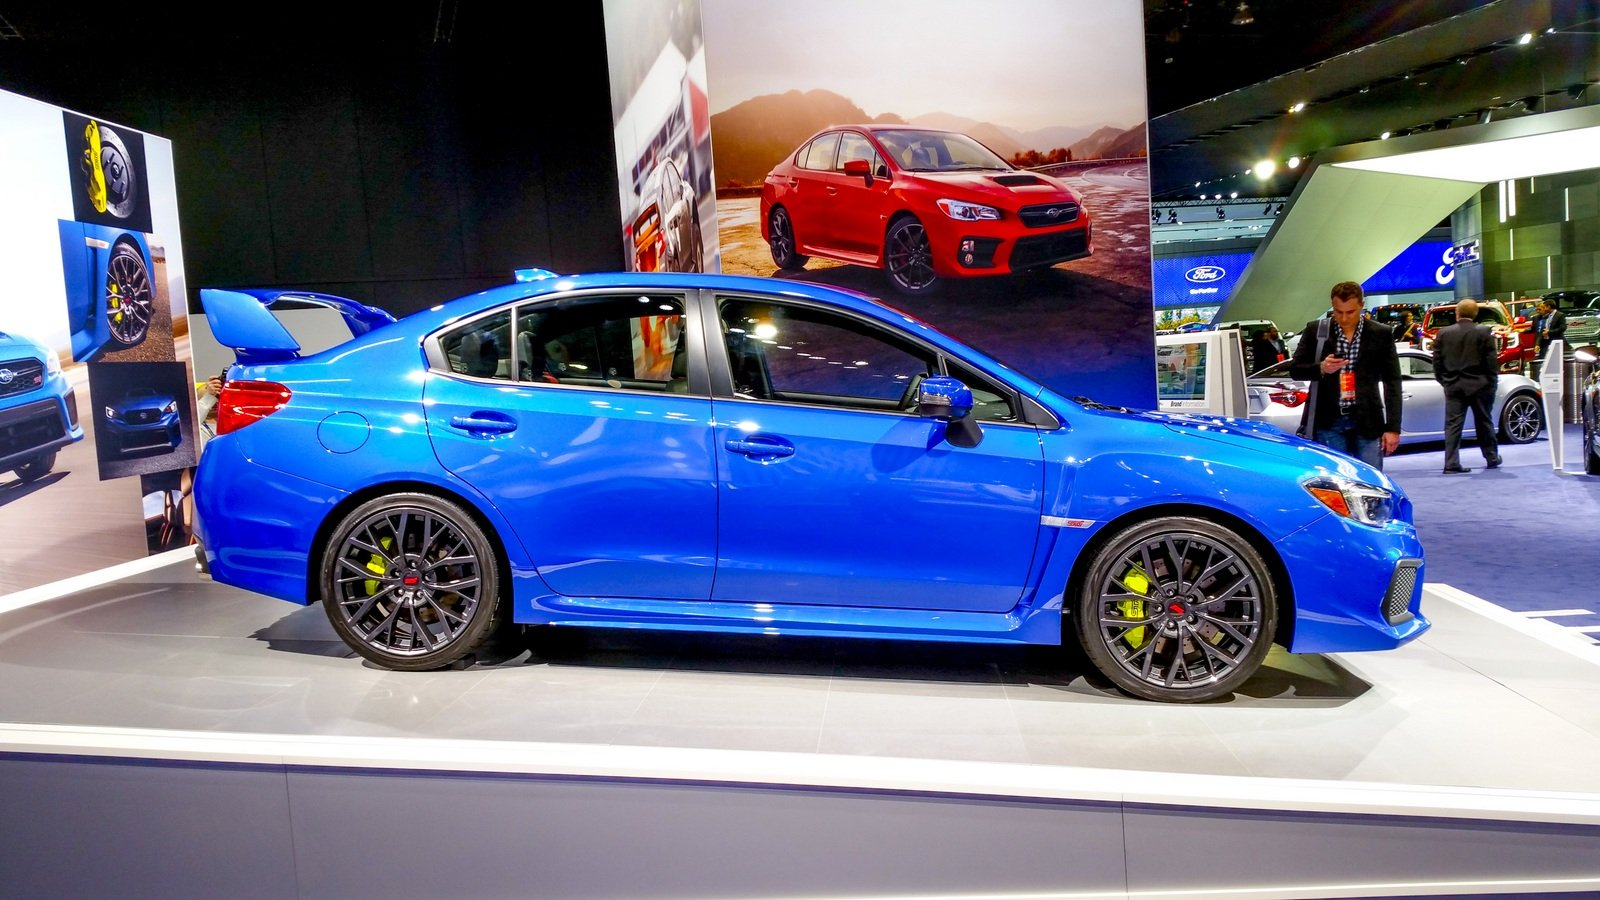 2018 subaru wrx sti picture 702502 car review top speed. Black Bedroom Furniture Sets. Home Design Ideas